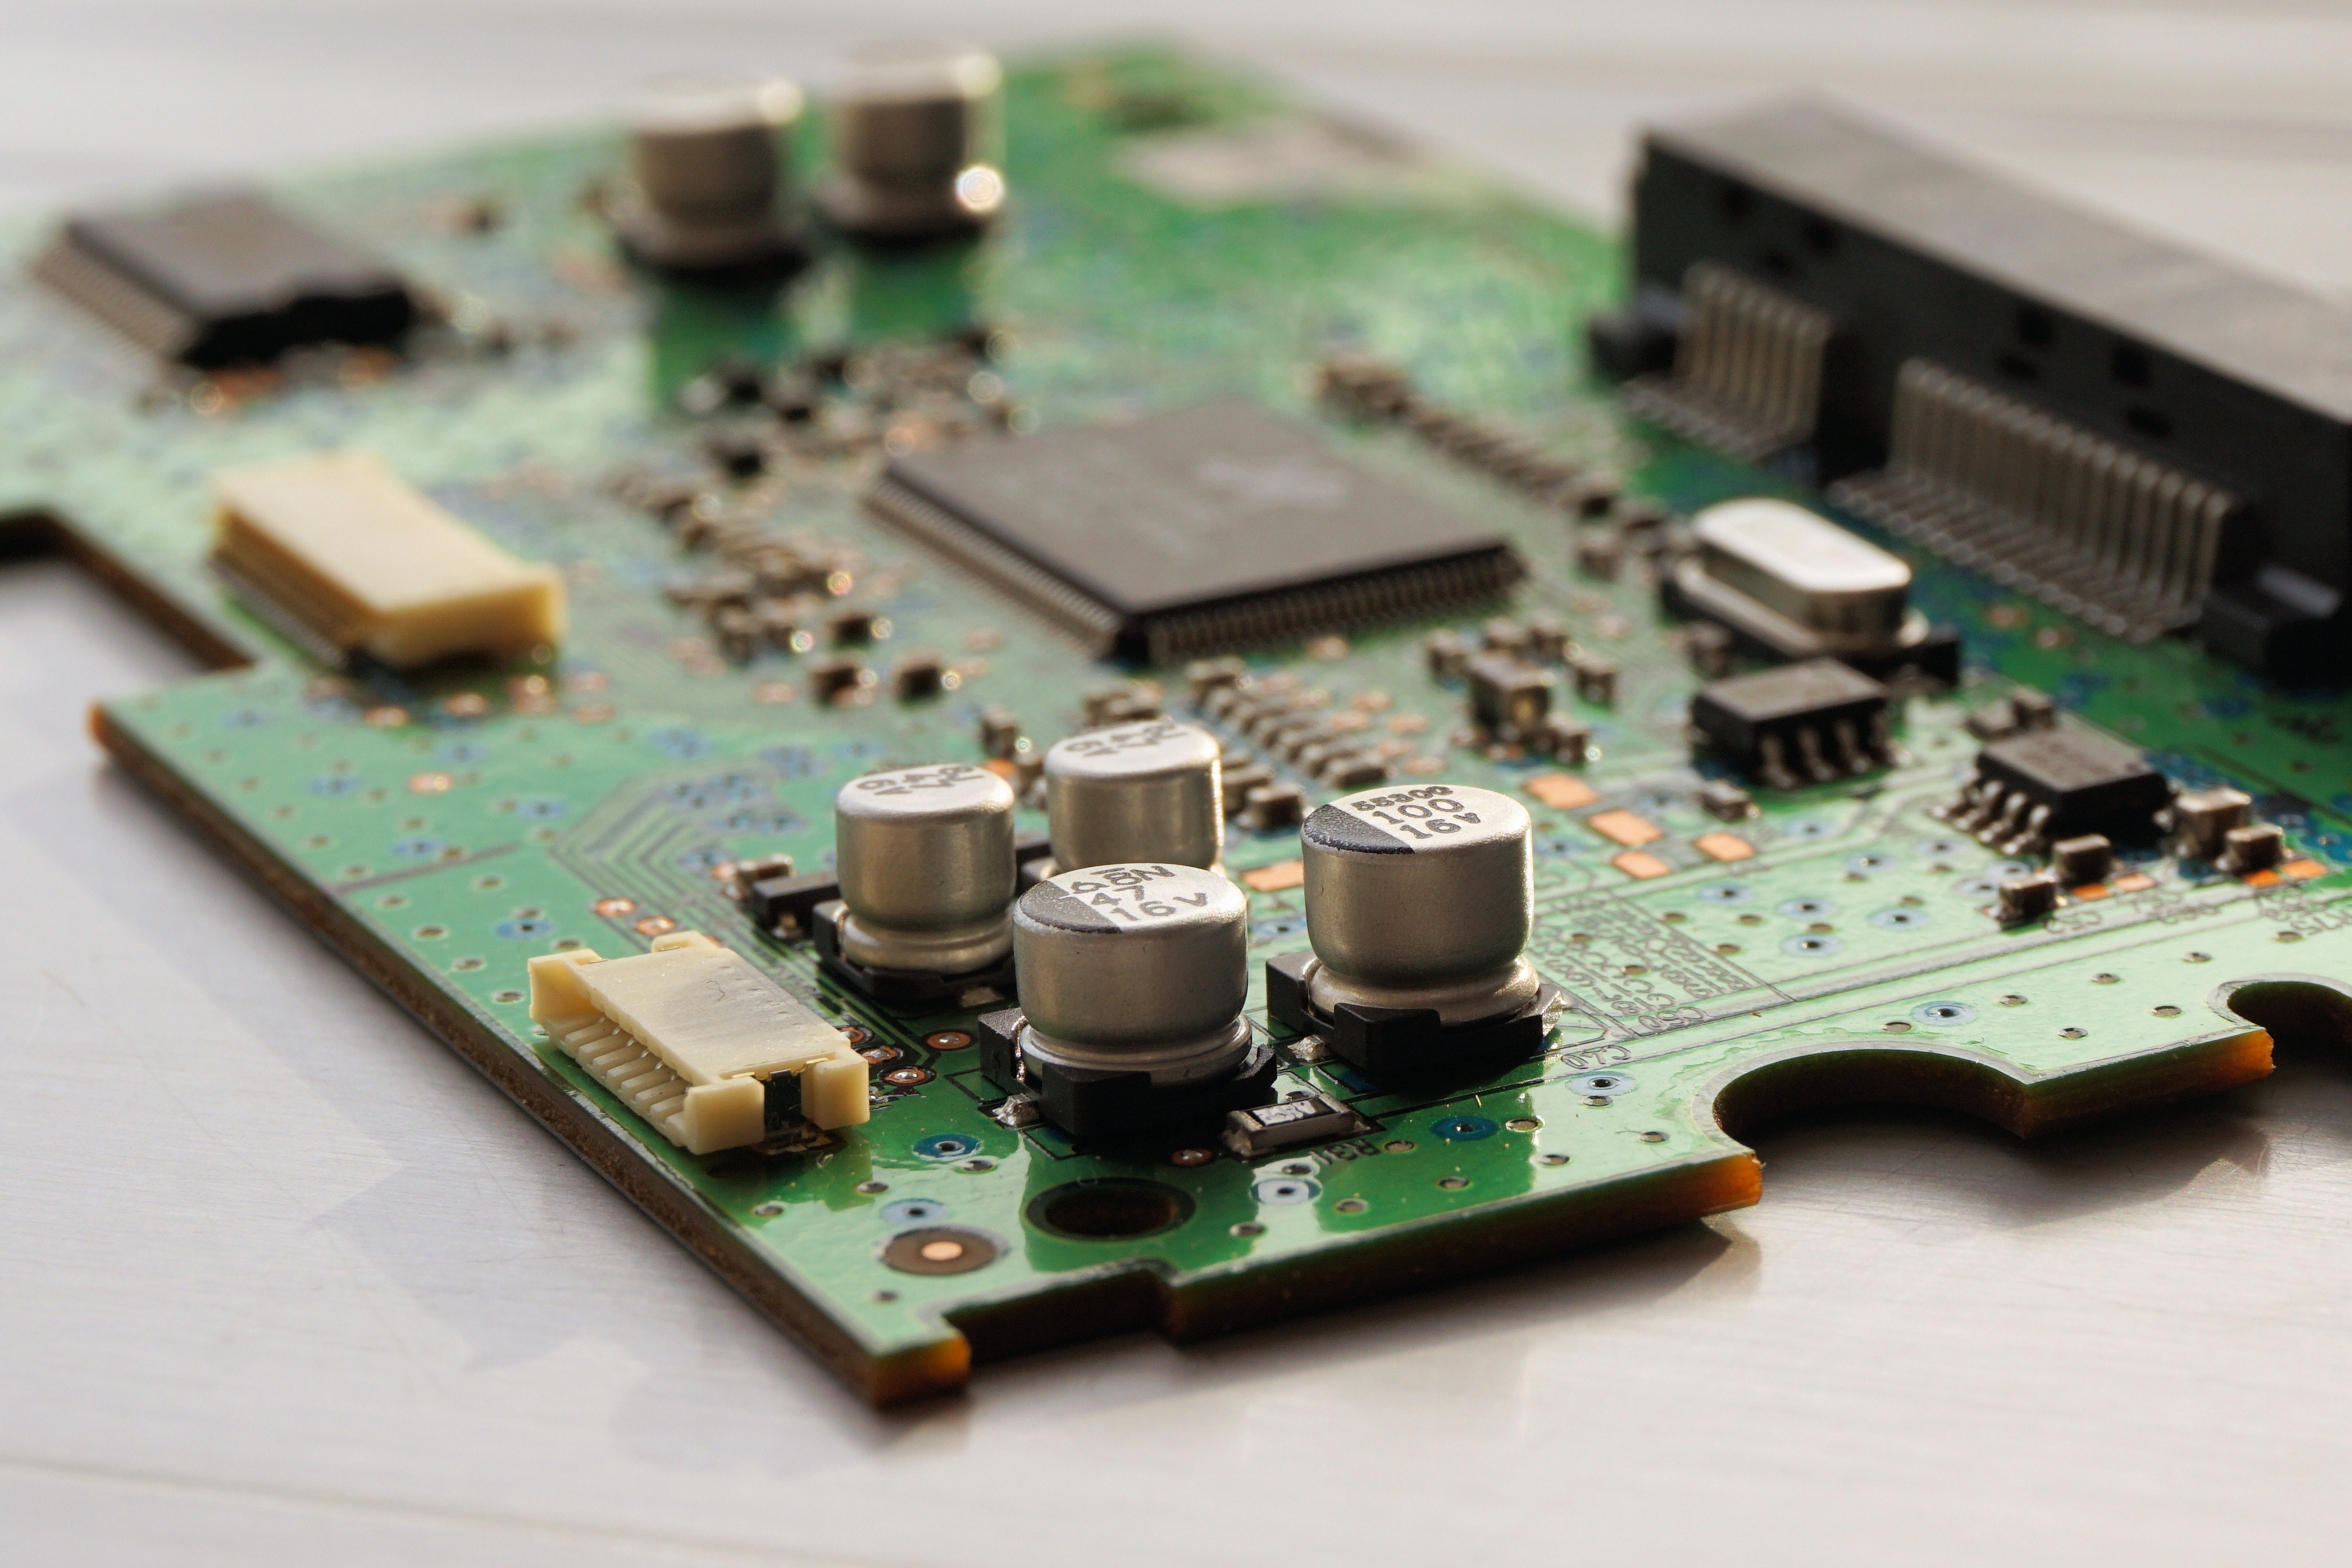 Close Up Photography Of Computer Motherboard Free Stock Photo Printed Circuit Board With Many Electrical Components Download